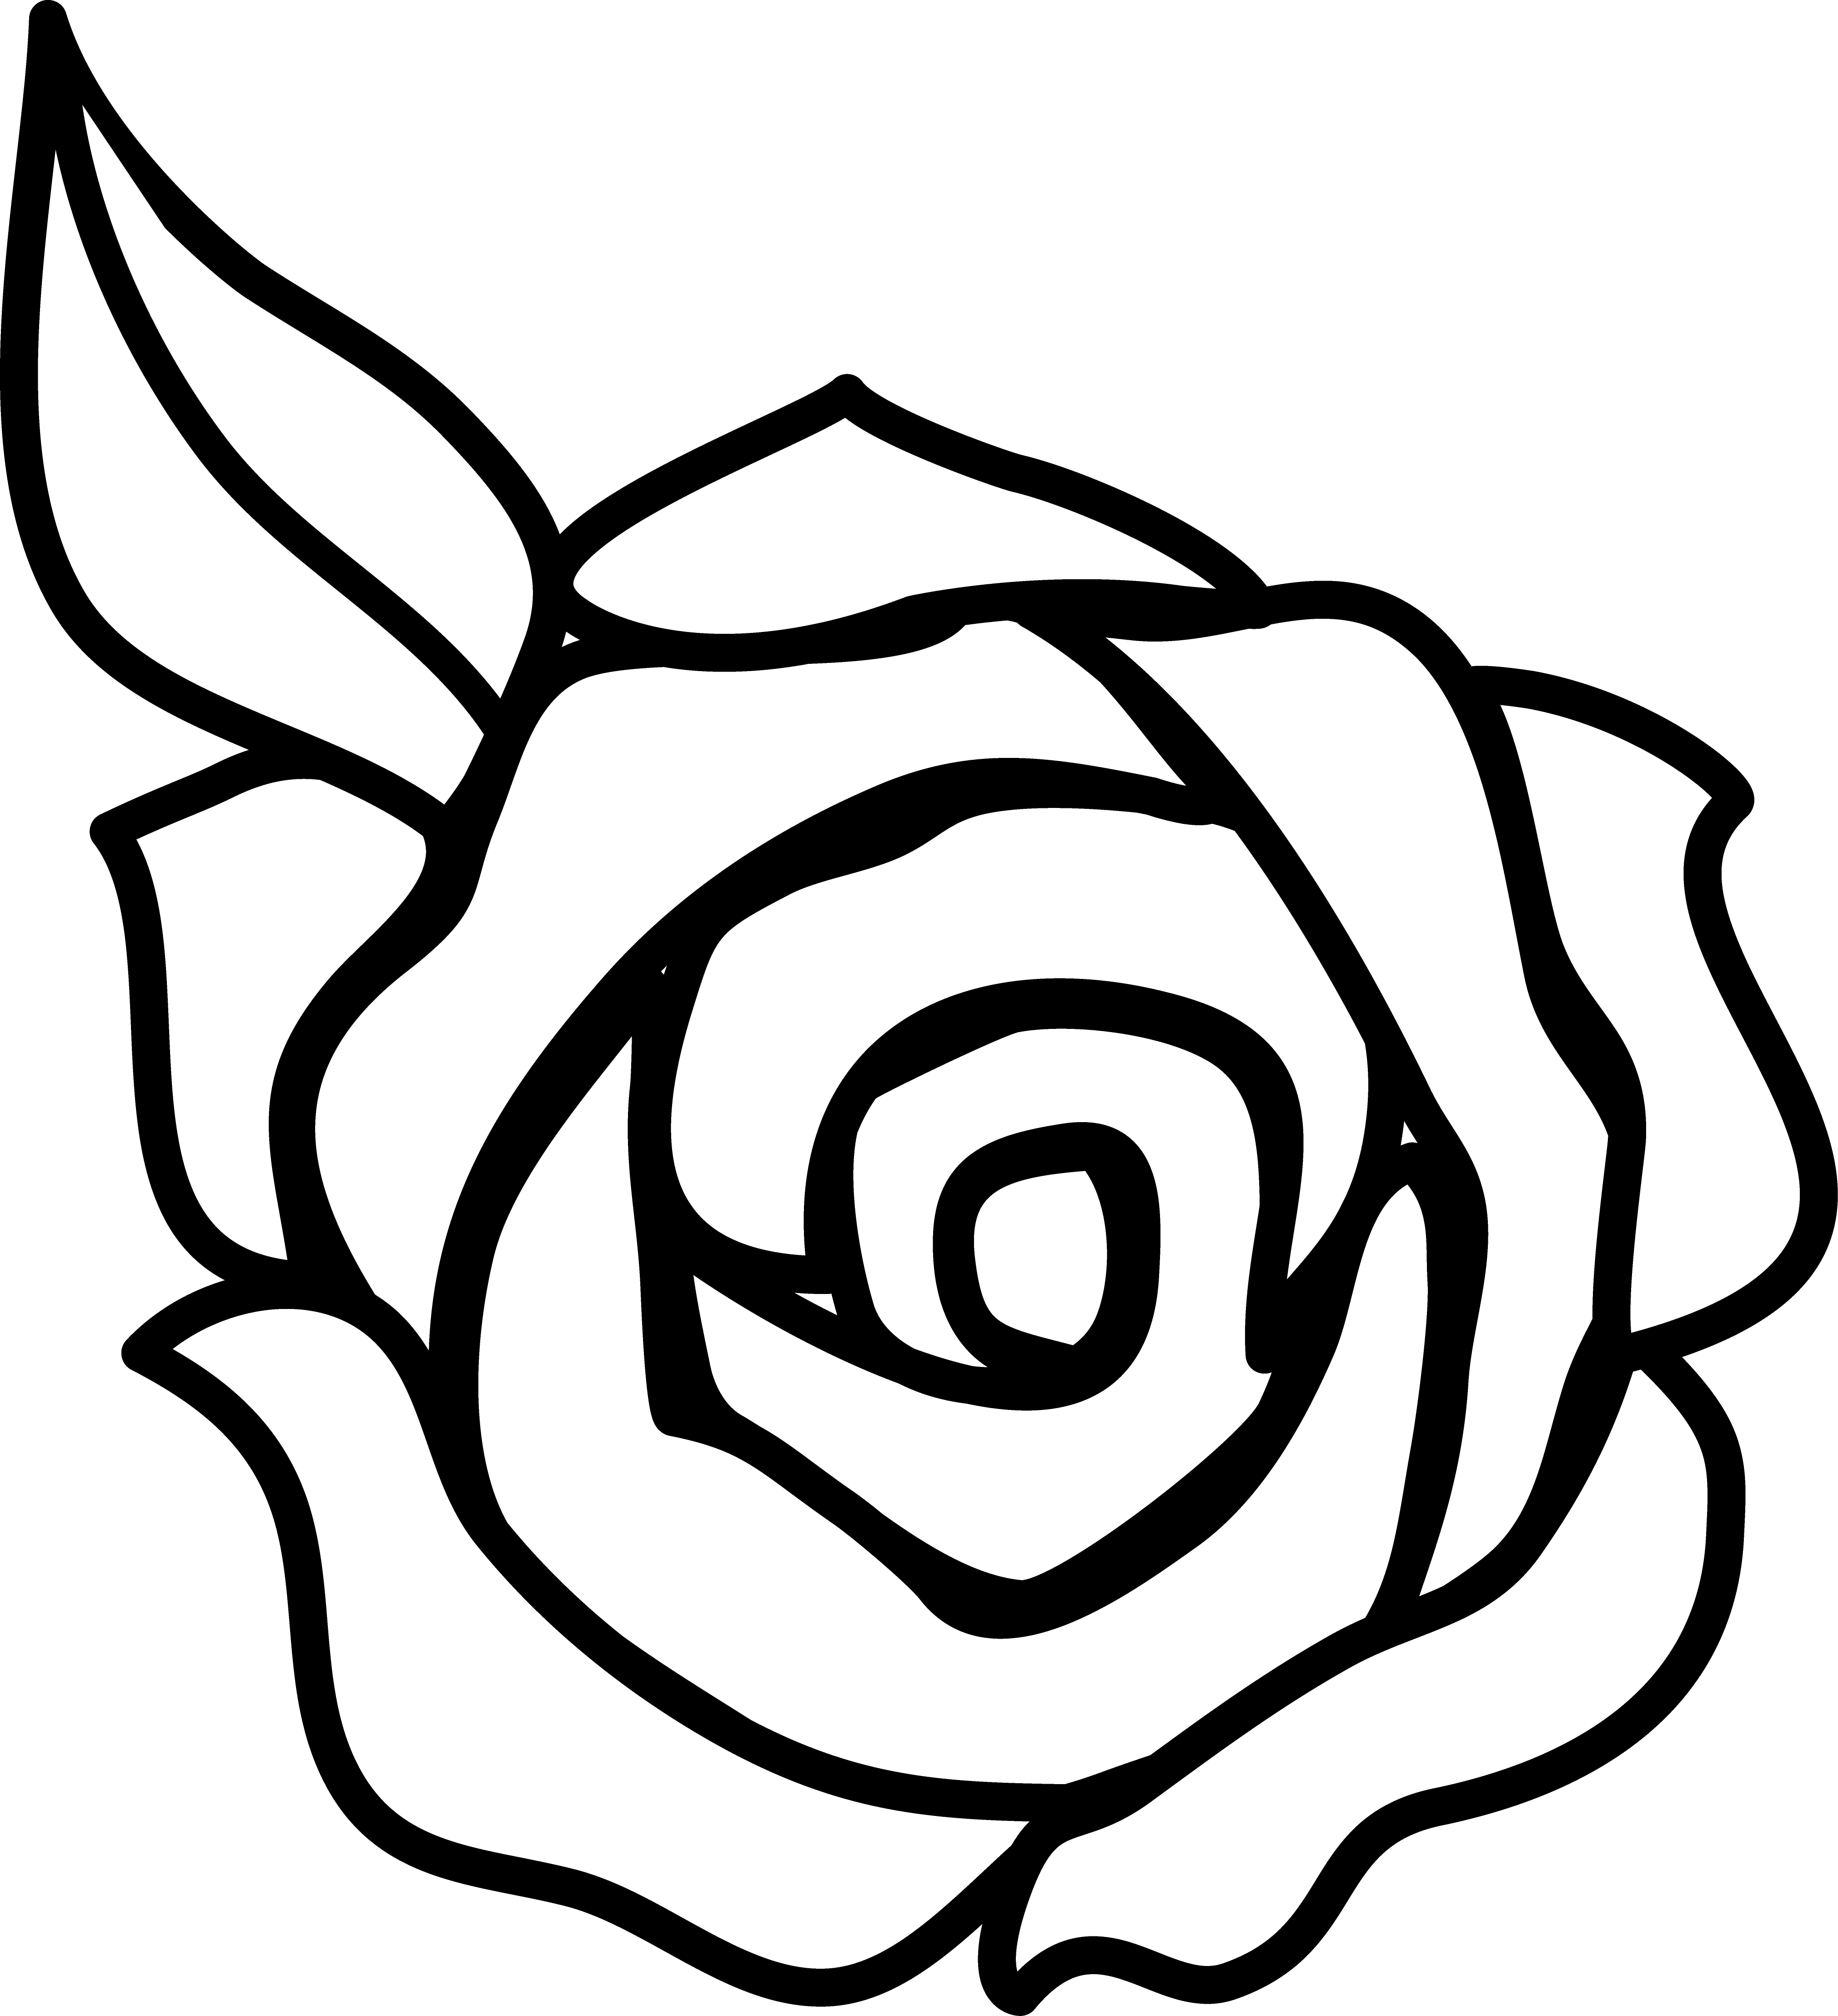 Dongetrabi rose clip art. Ham clipart black and white